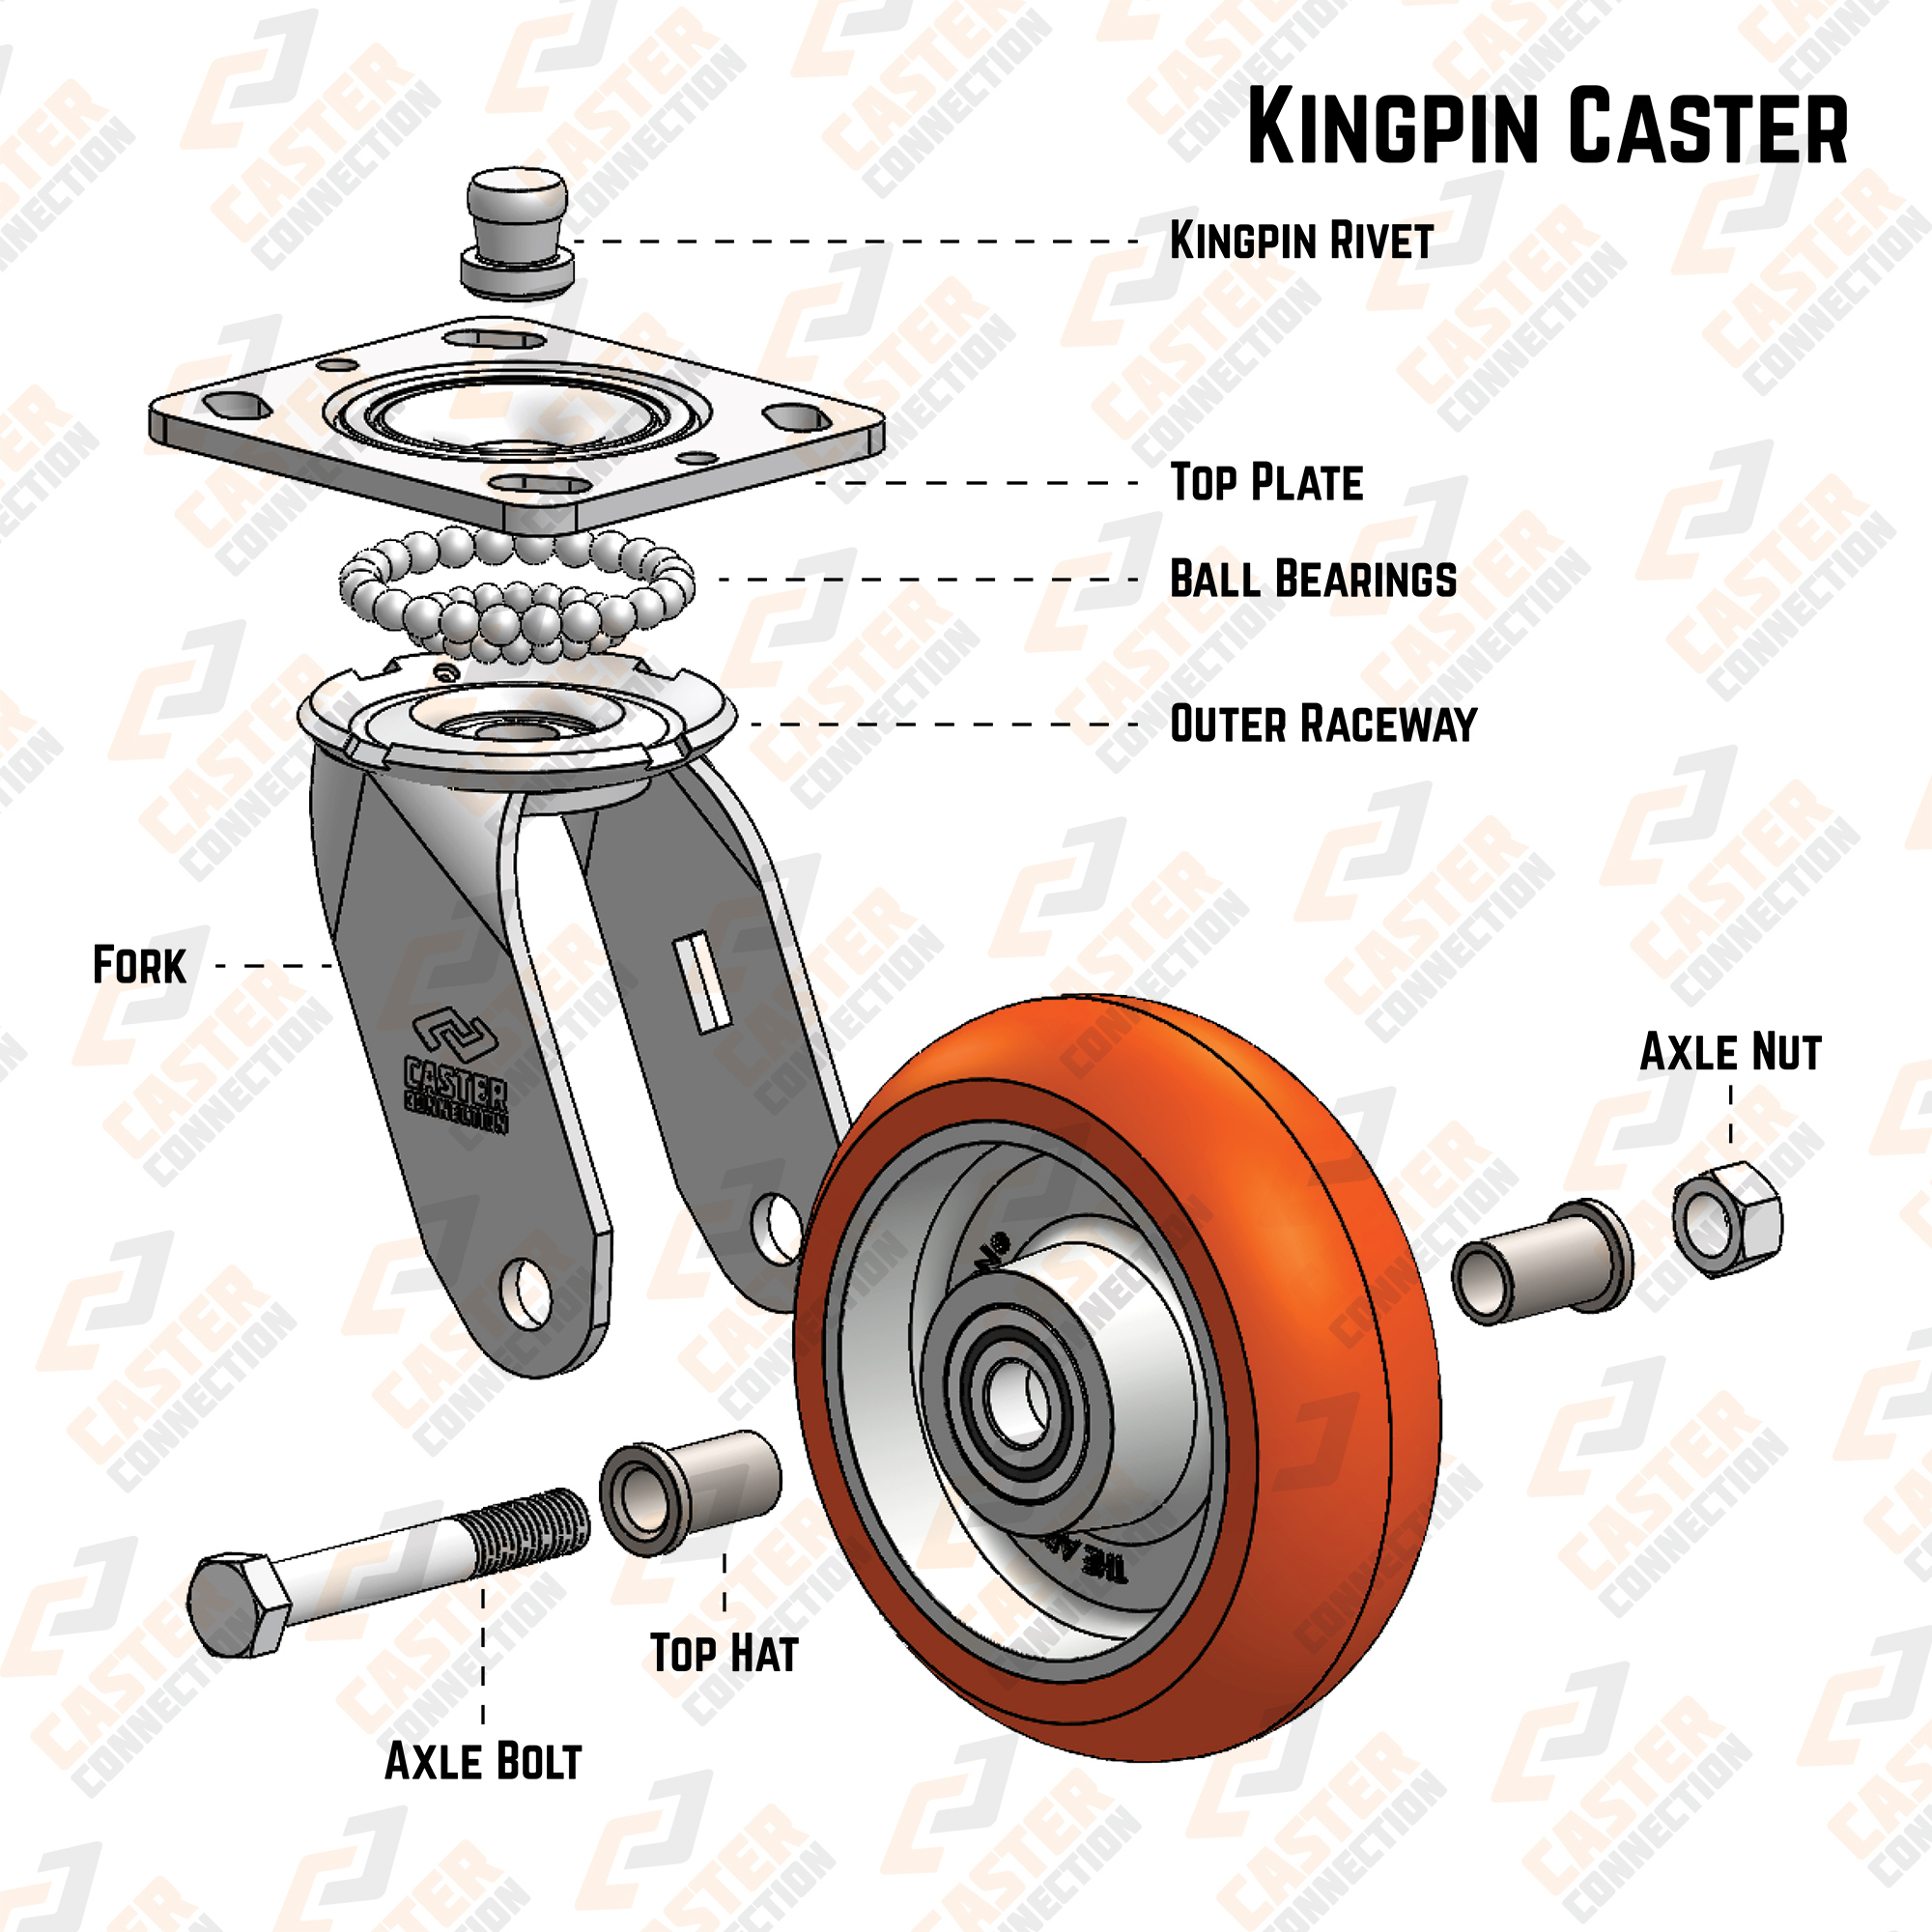 Kingpin Caster Component Anatomy